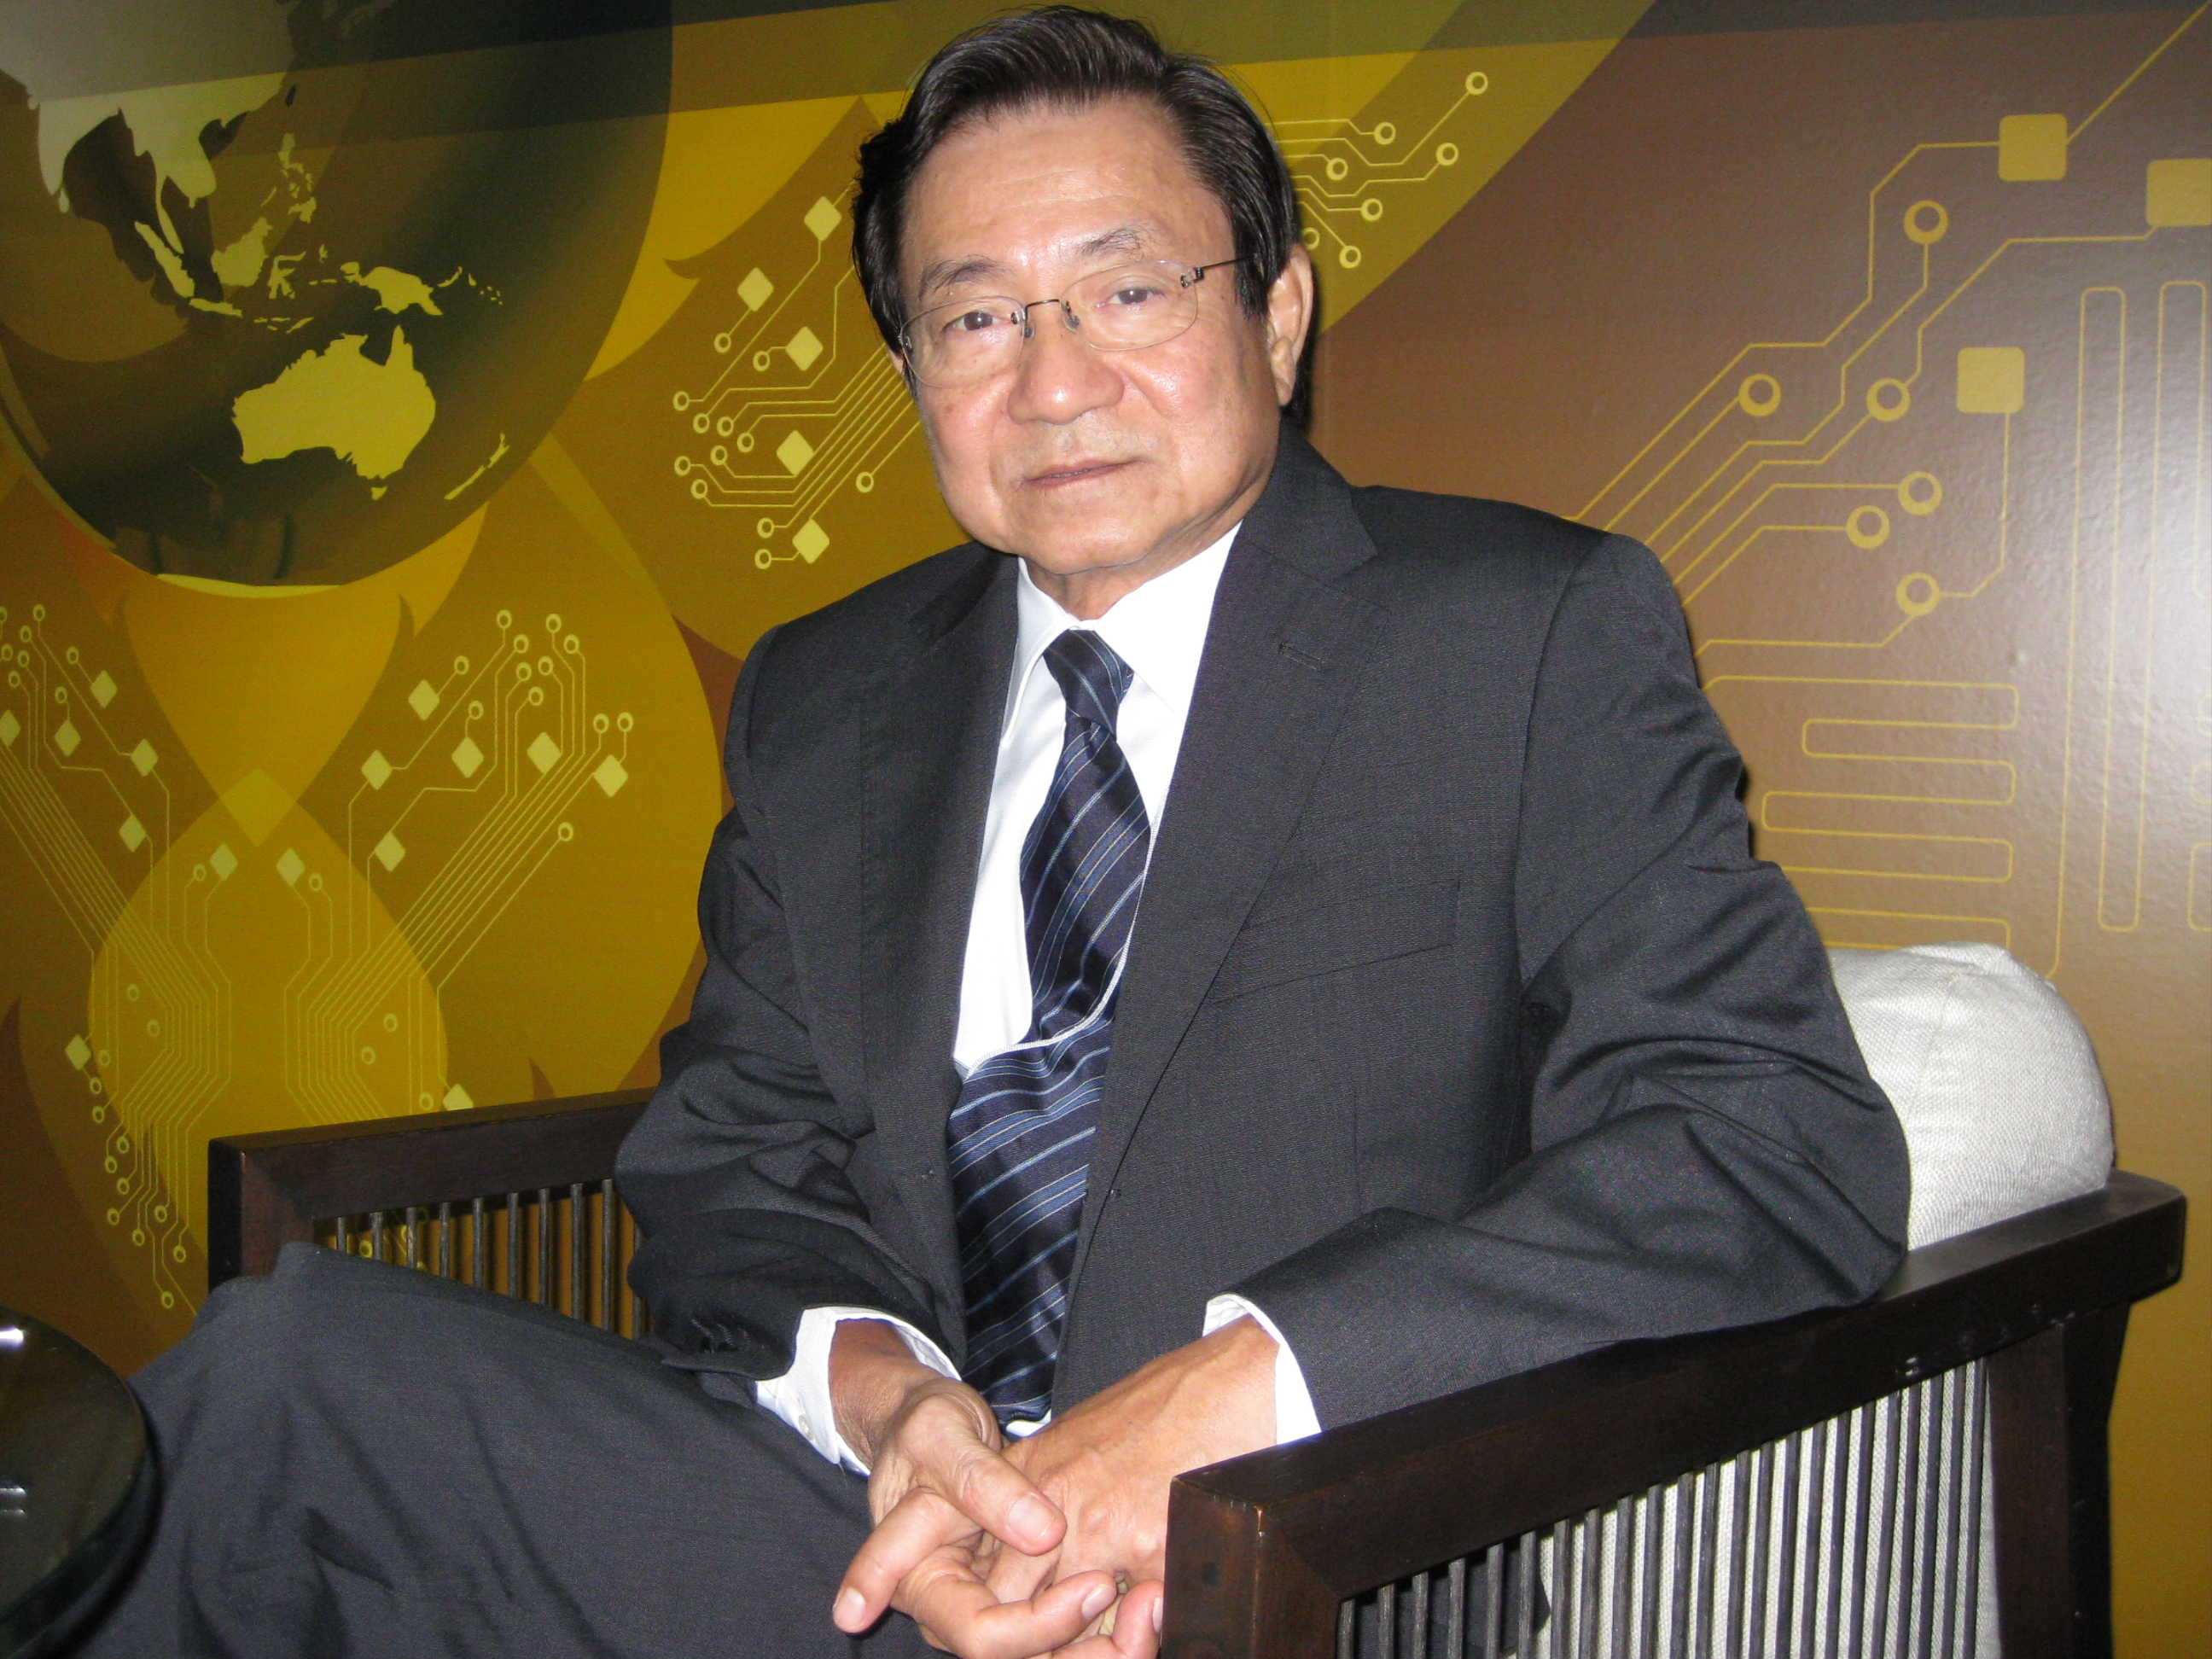 Manoo Ordeedolchest- Chairman of the Board, Software Park Thailand and Former President of Software Industry Promotion Agency (Sipa)